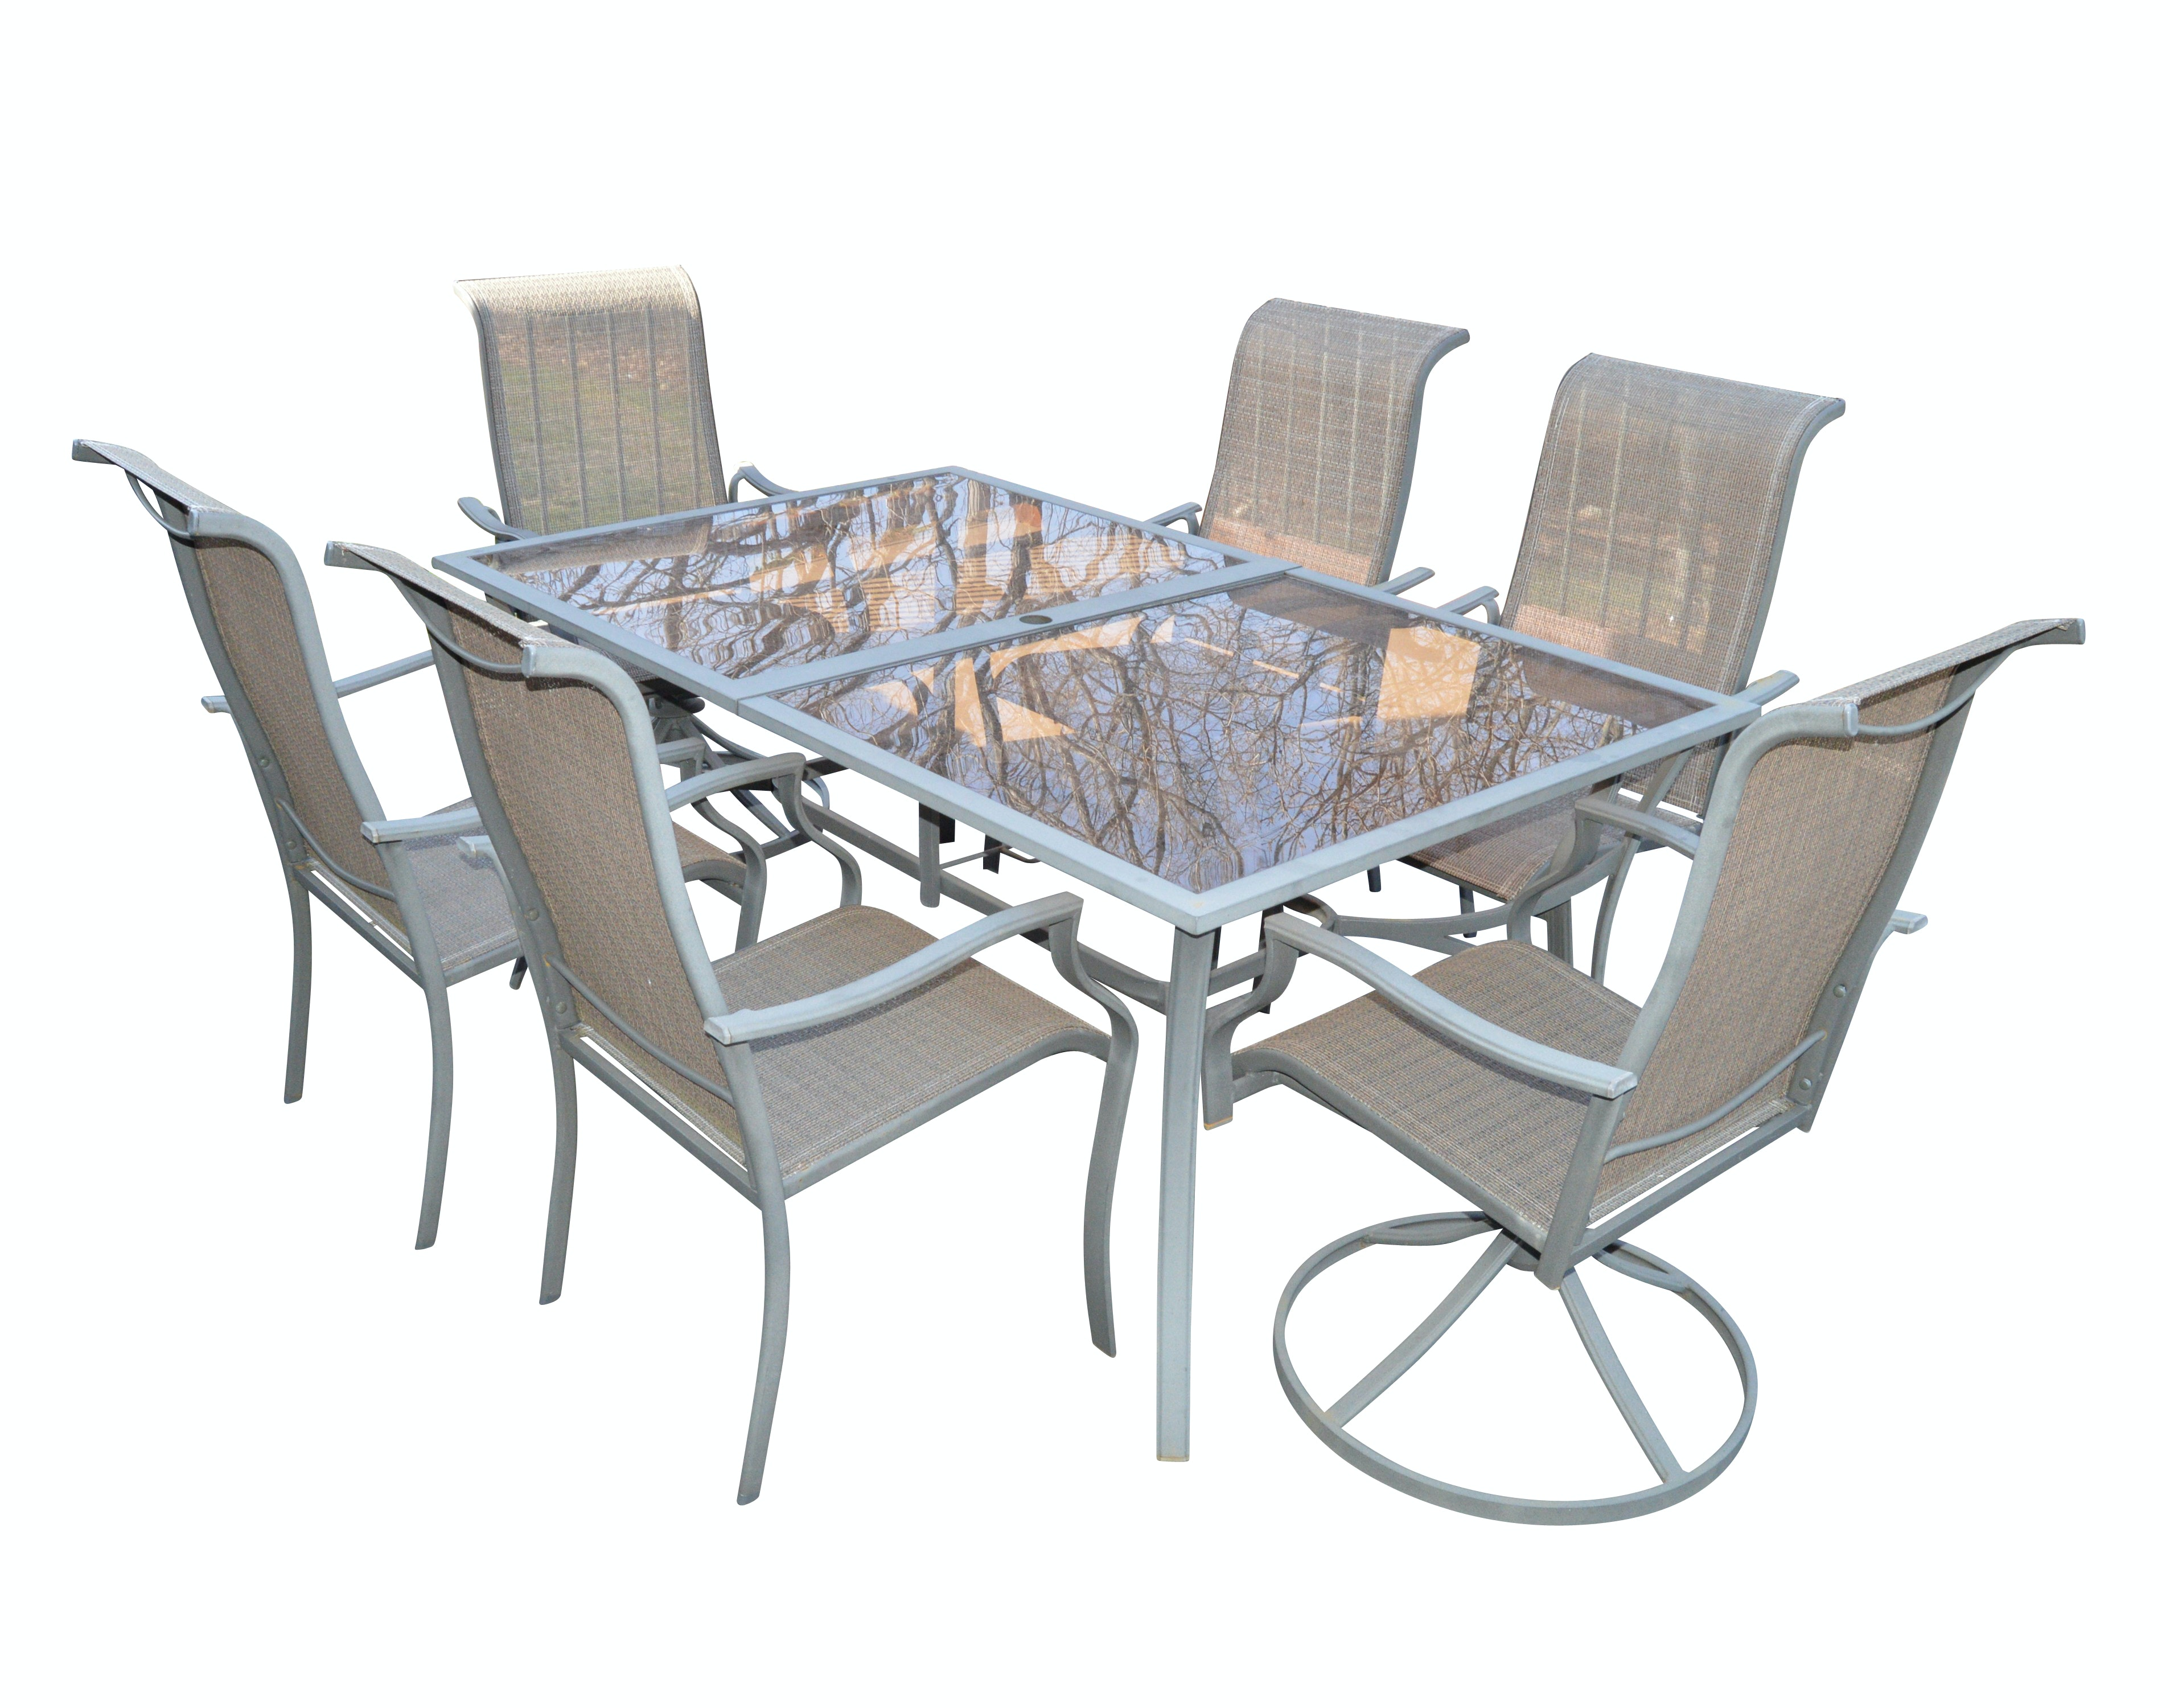 glass top patio table and chairs rh ebth com Glass Table Top Patio Sets Patio Table and 6 Chairs